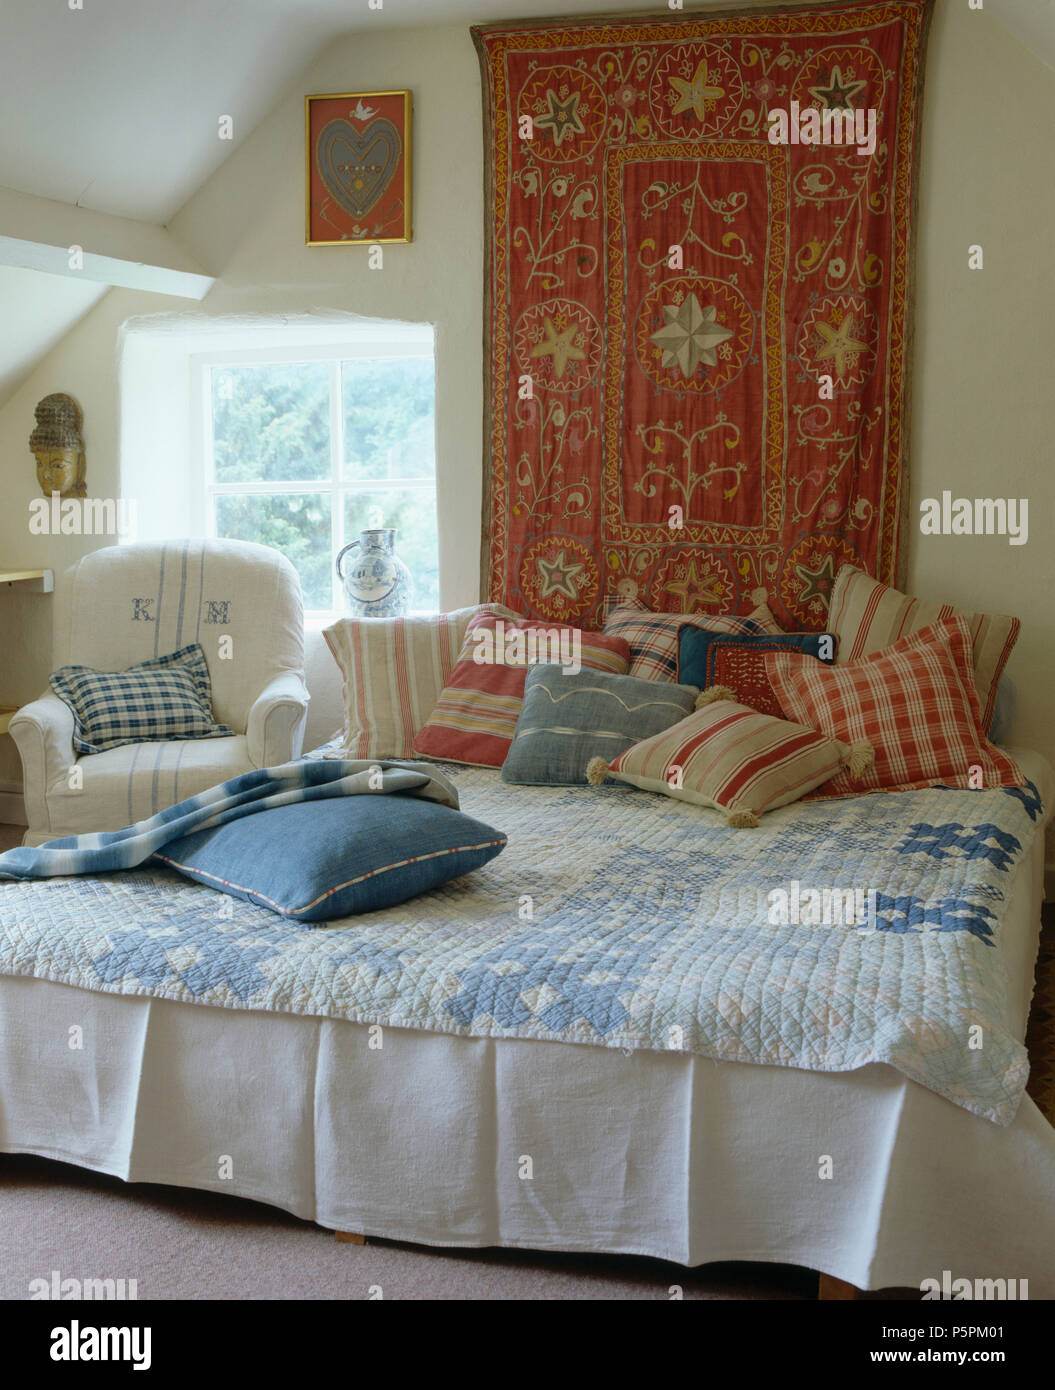 Country Bedroom Indian Style Wall Hanging Above Bed Piled With Red